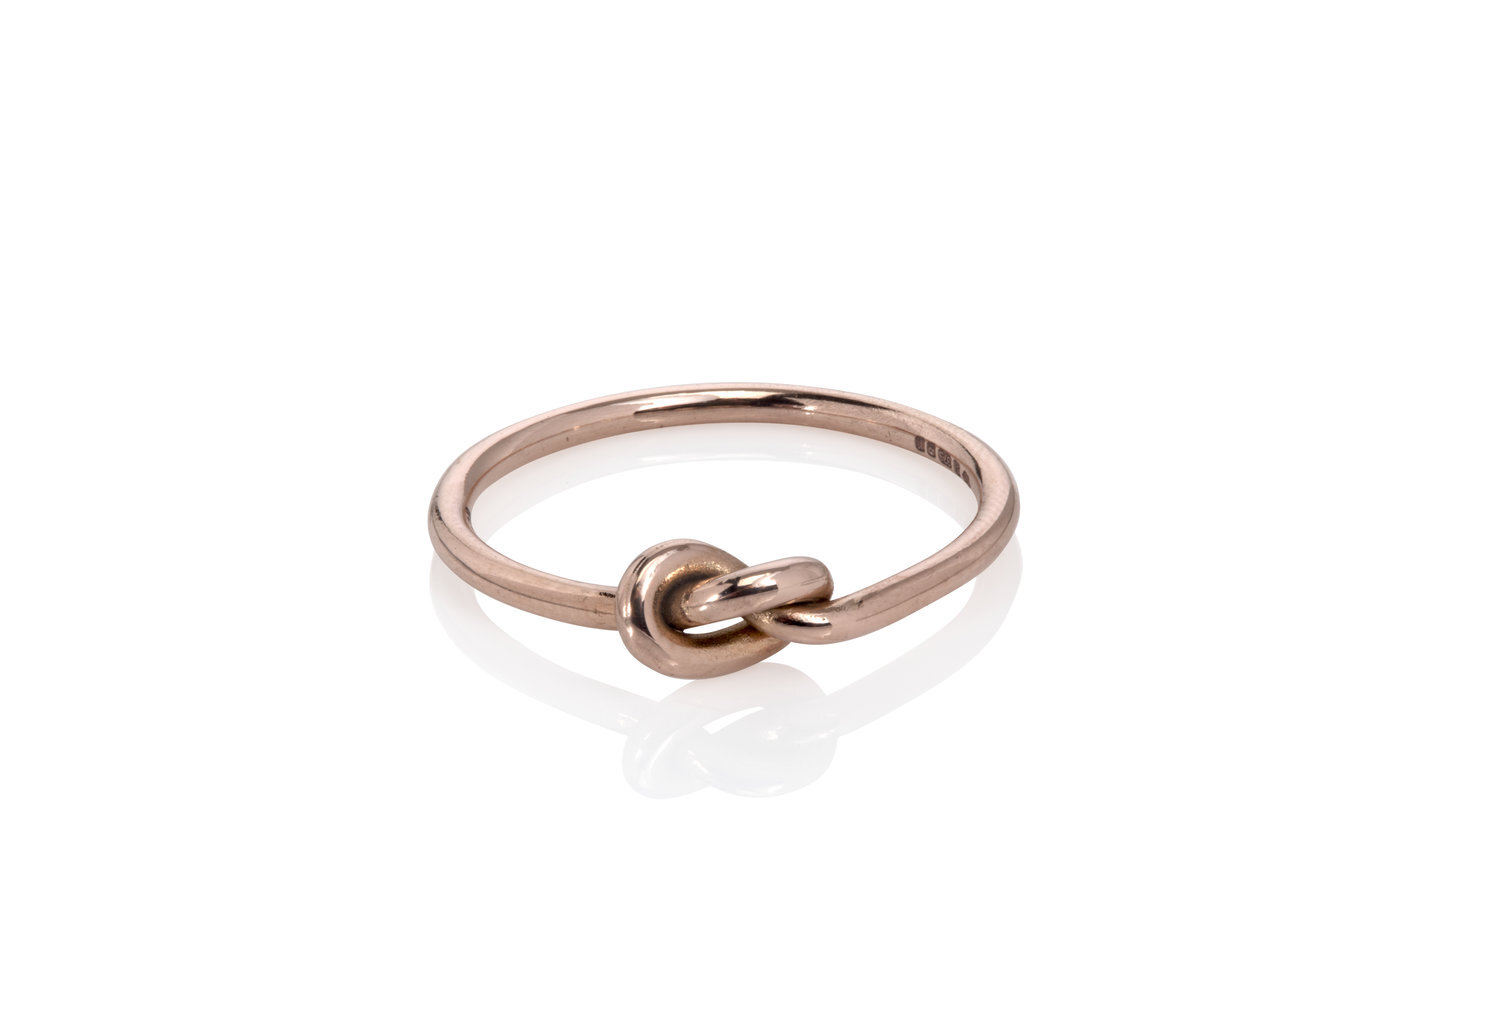 Solid Gold Knot Ring Handmade Jewellery London The Wearer